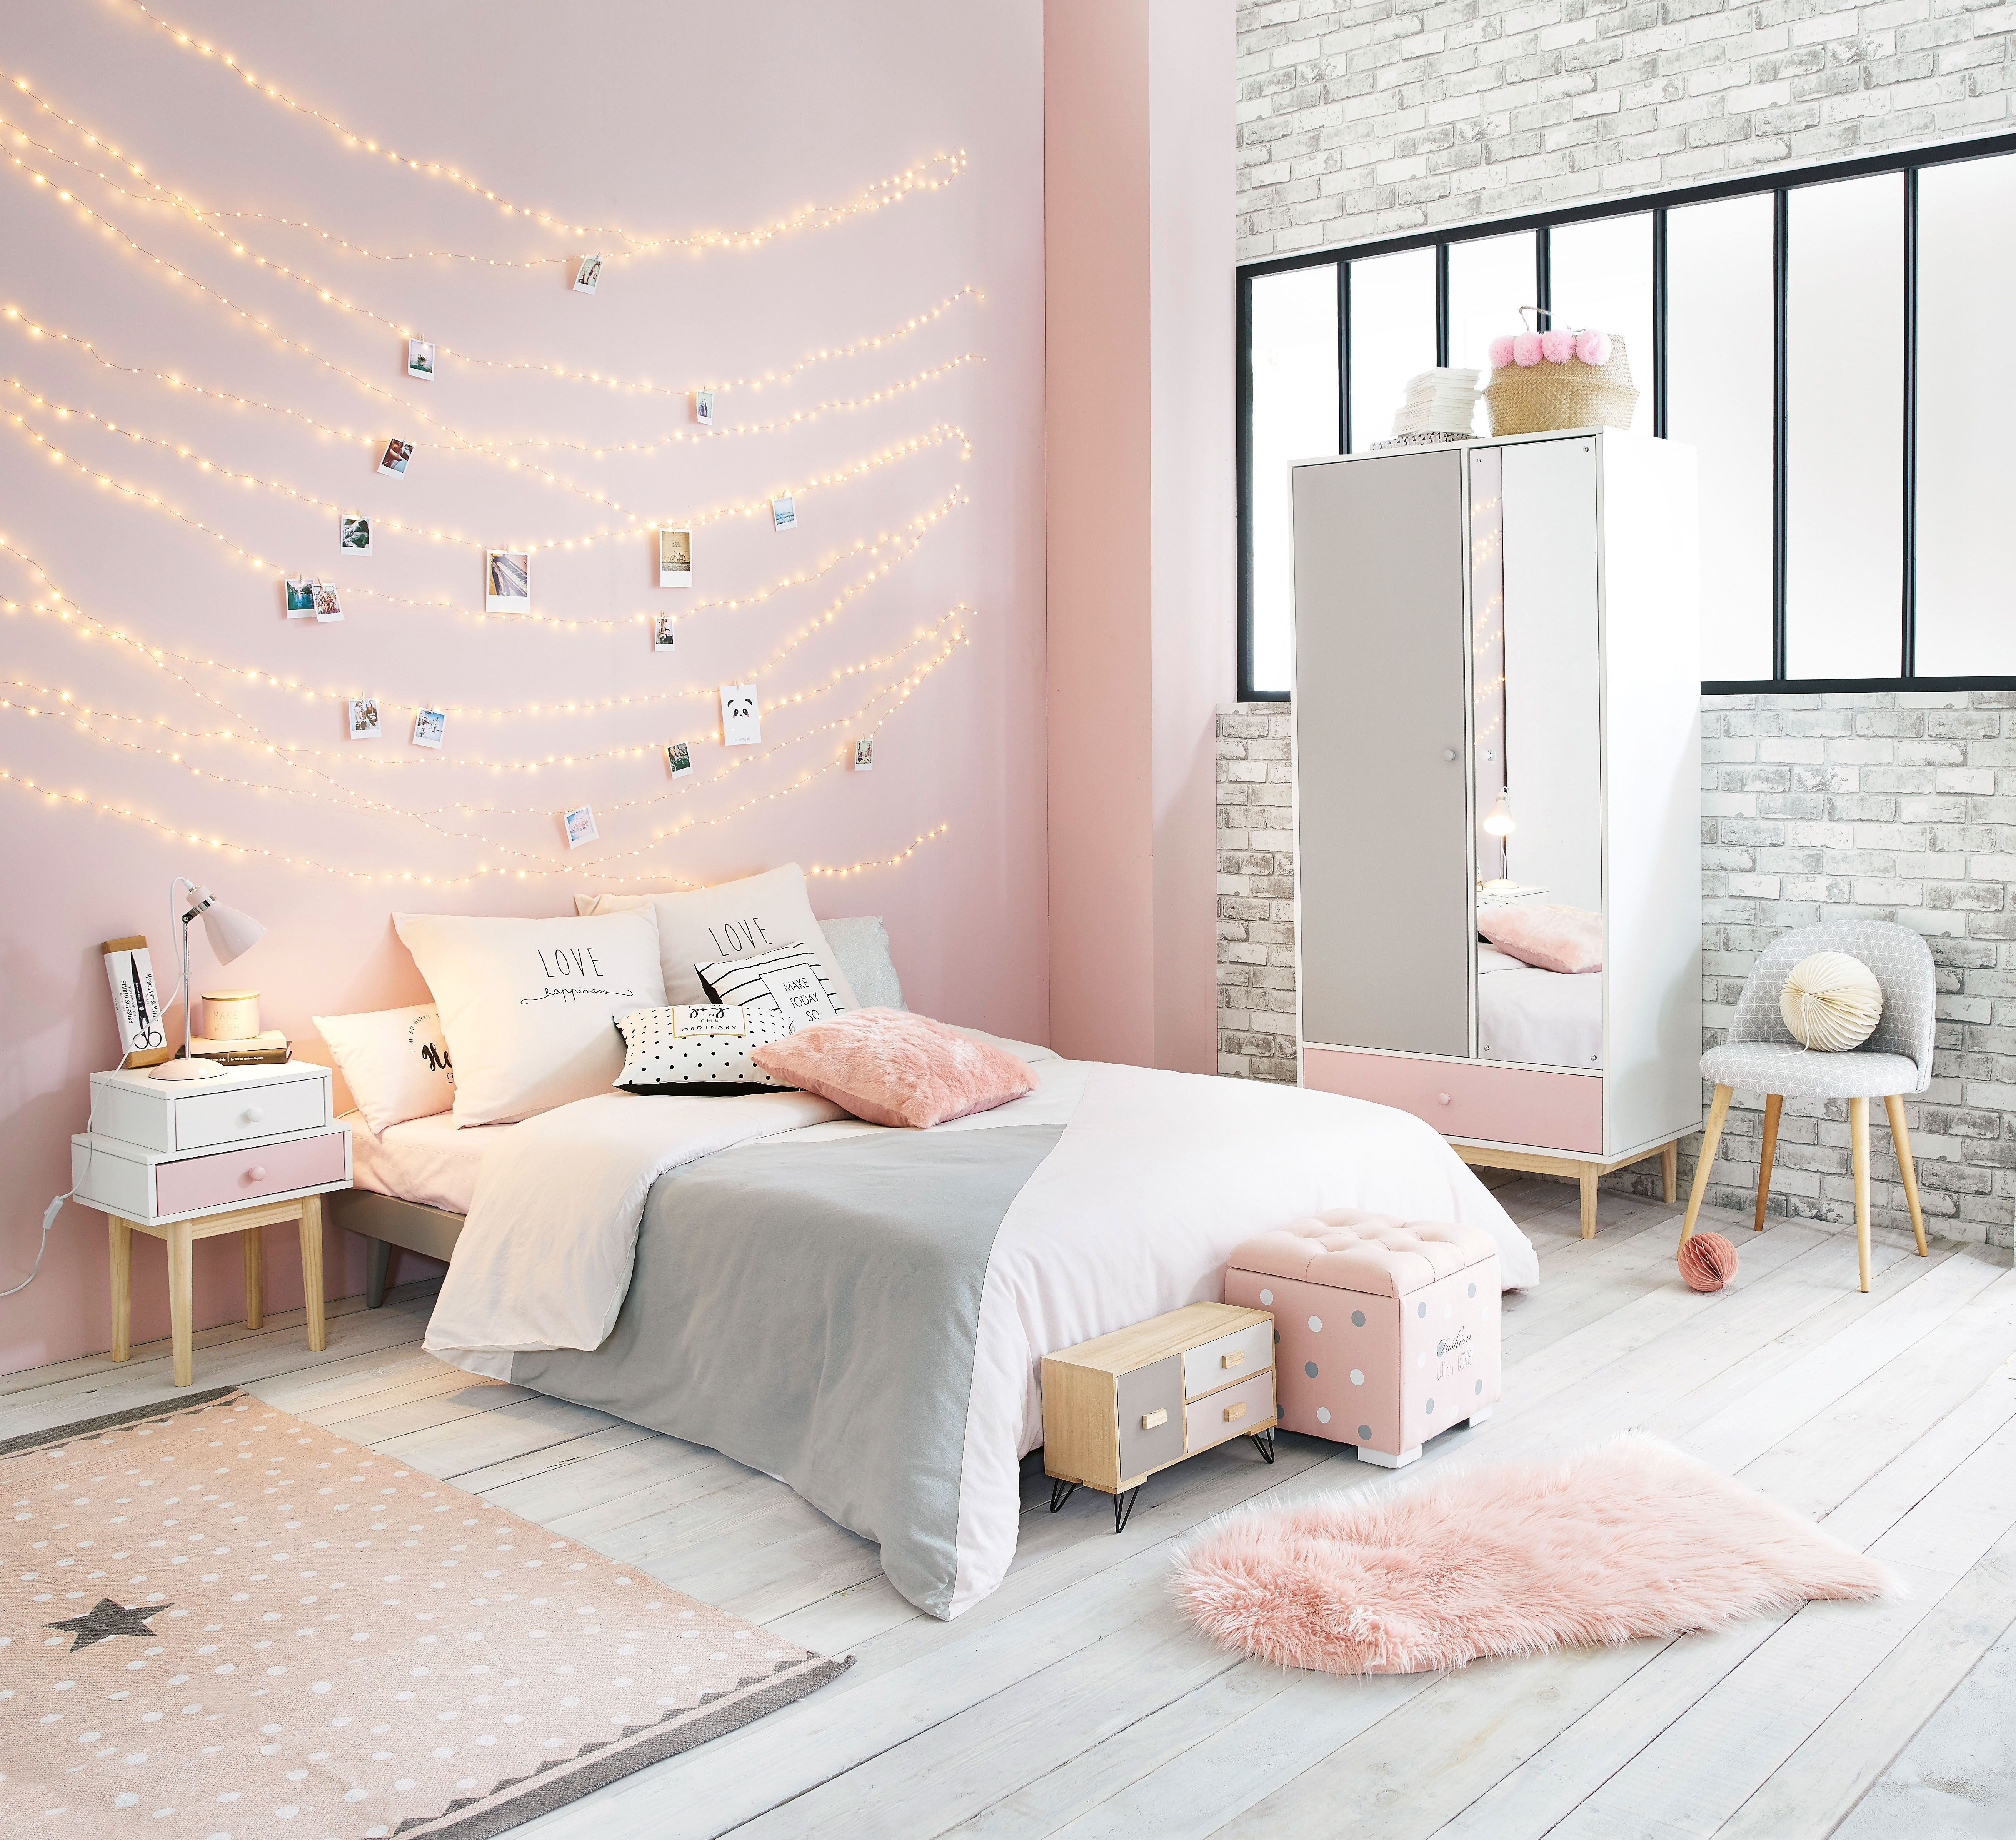 Get Inspired To Create A Trendy Bedroom For Little Girls With These Decorations And Furnishings Chambre Rose Et Blanc Deco Chambre Rose Gold Deco Chambre Rose